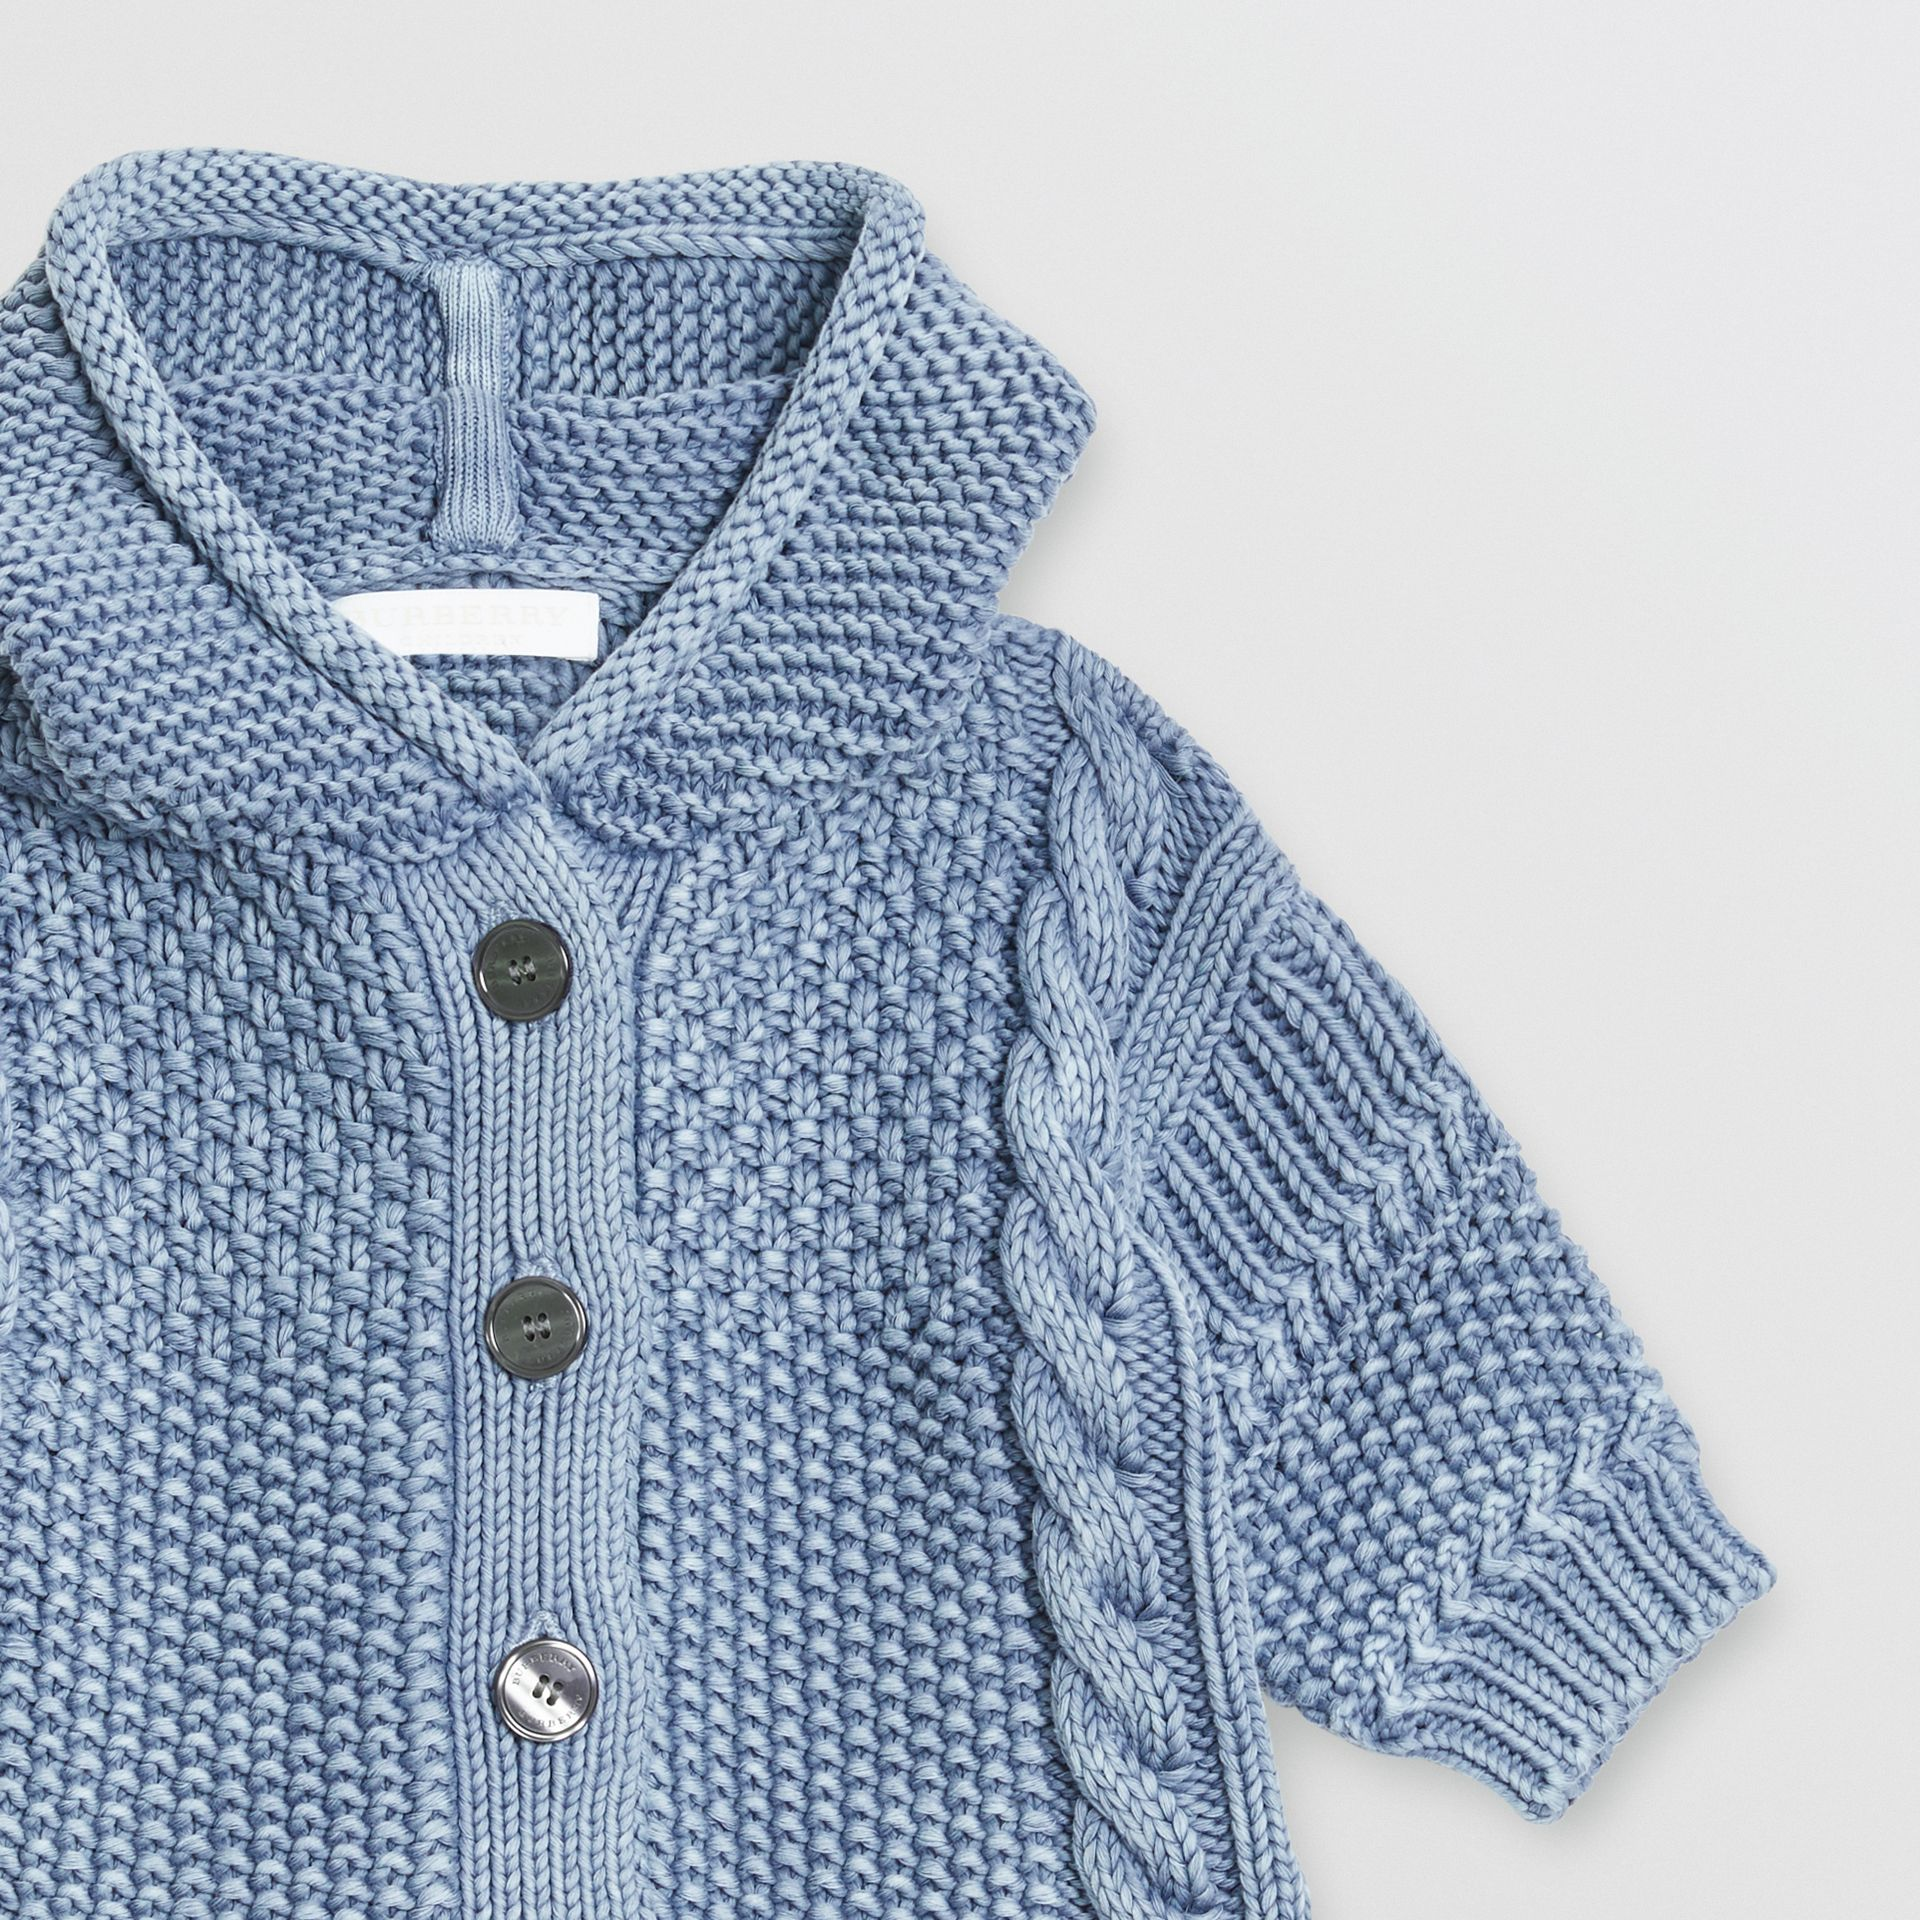 Contrast Knit Cotton Hooded Jacket in Dusty Blue - Children | Burberry - gallery image 4